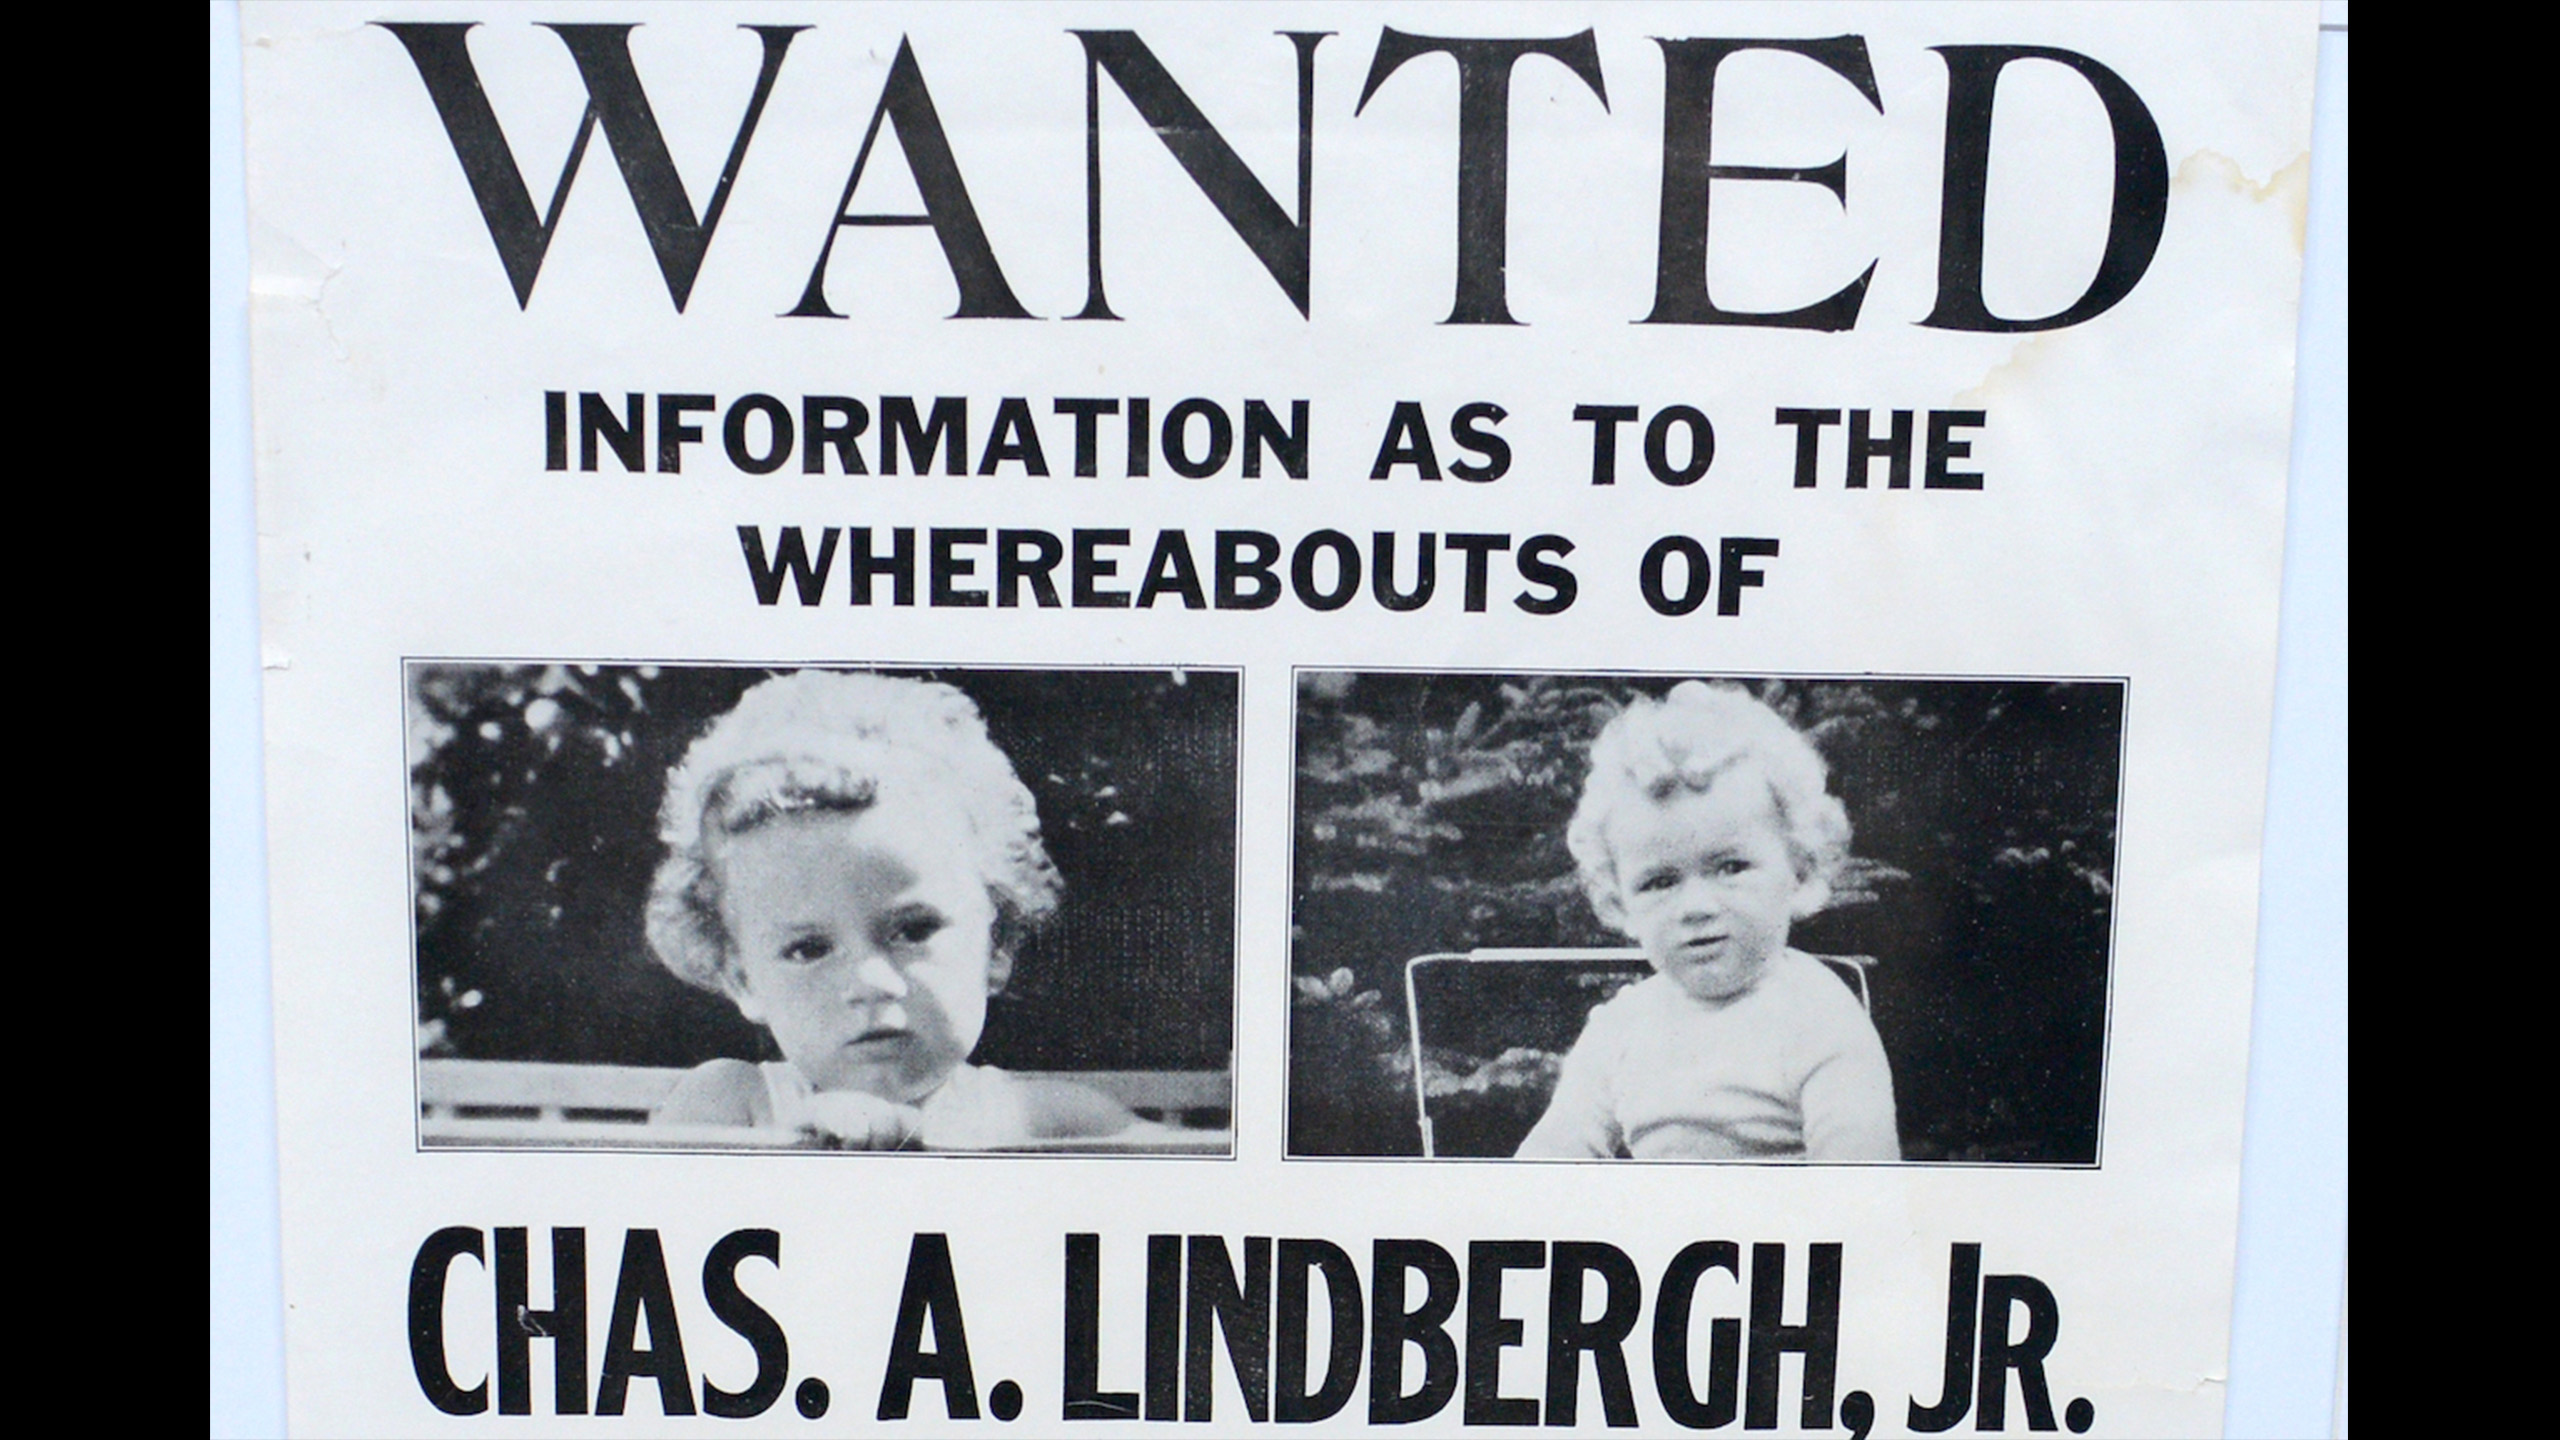 charles lindbergh kidnapping On march 1, 1932, charles augustus lindbergh jr, 20-month-old son of aviator  charles lindbergh and anne morrow lindbergh, was abducted from his home.